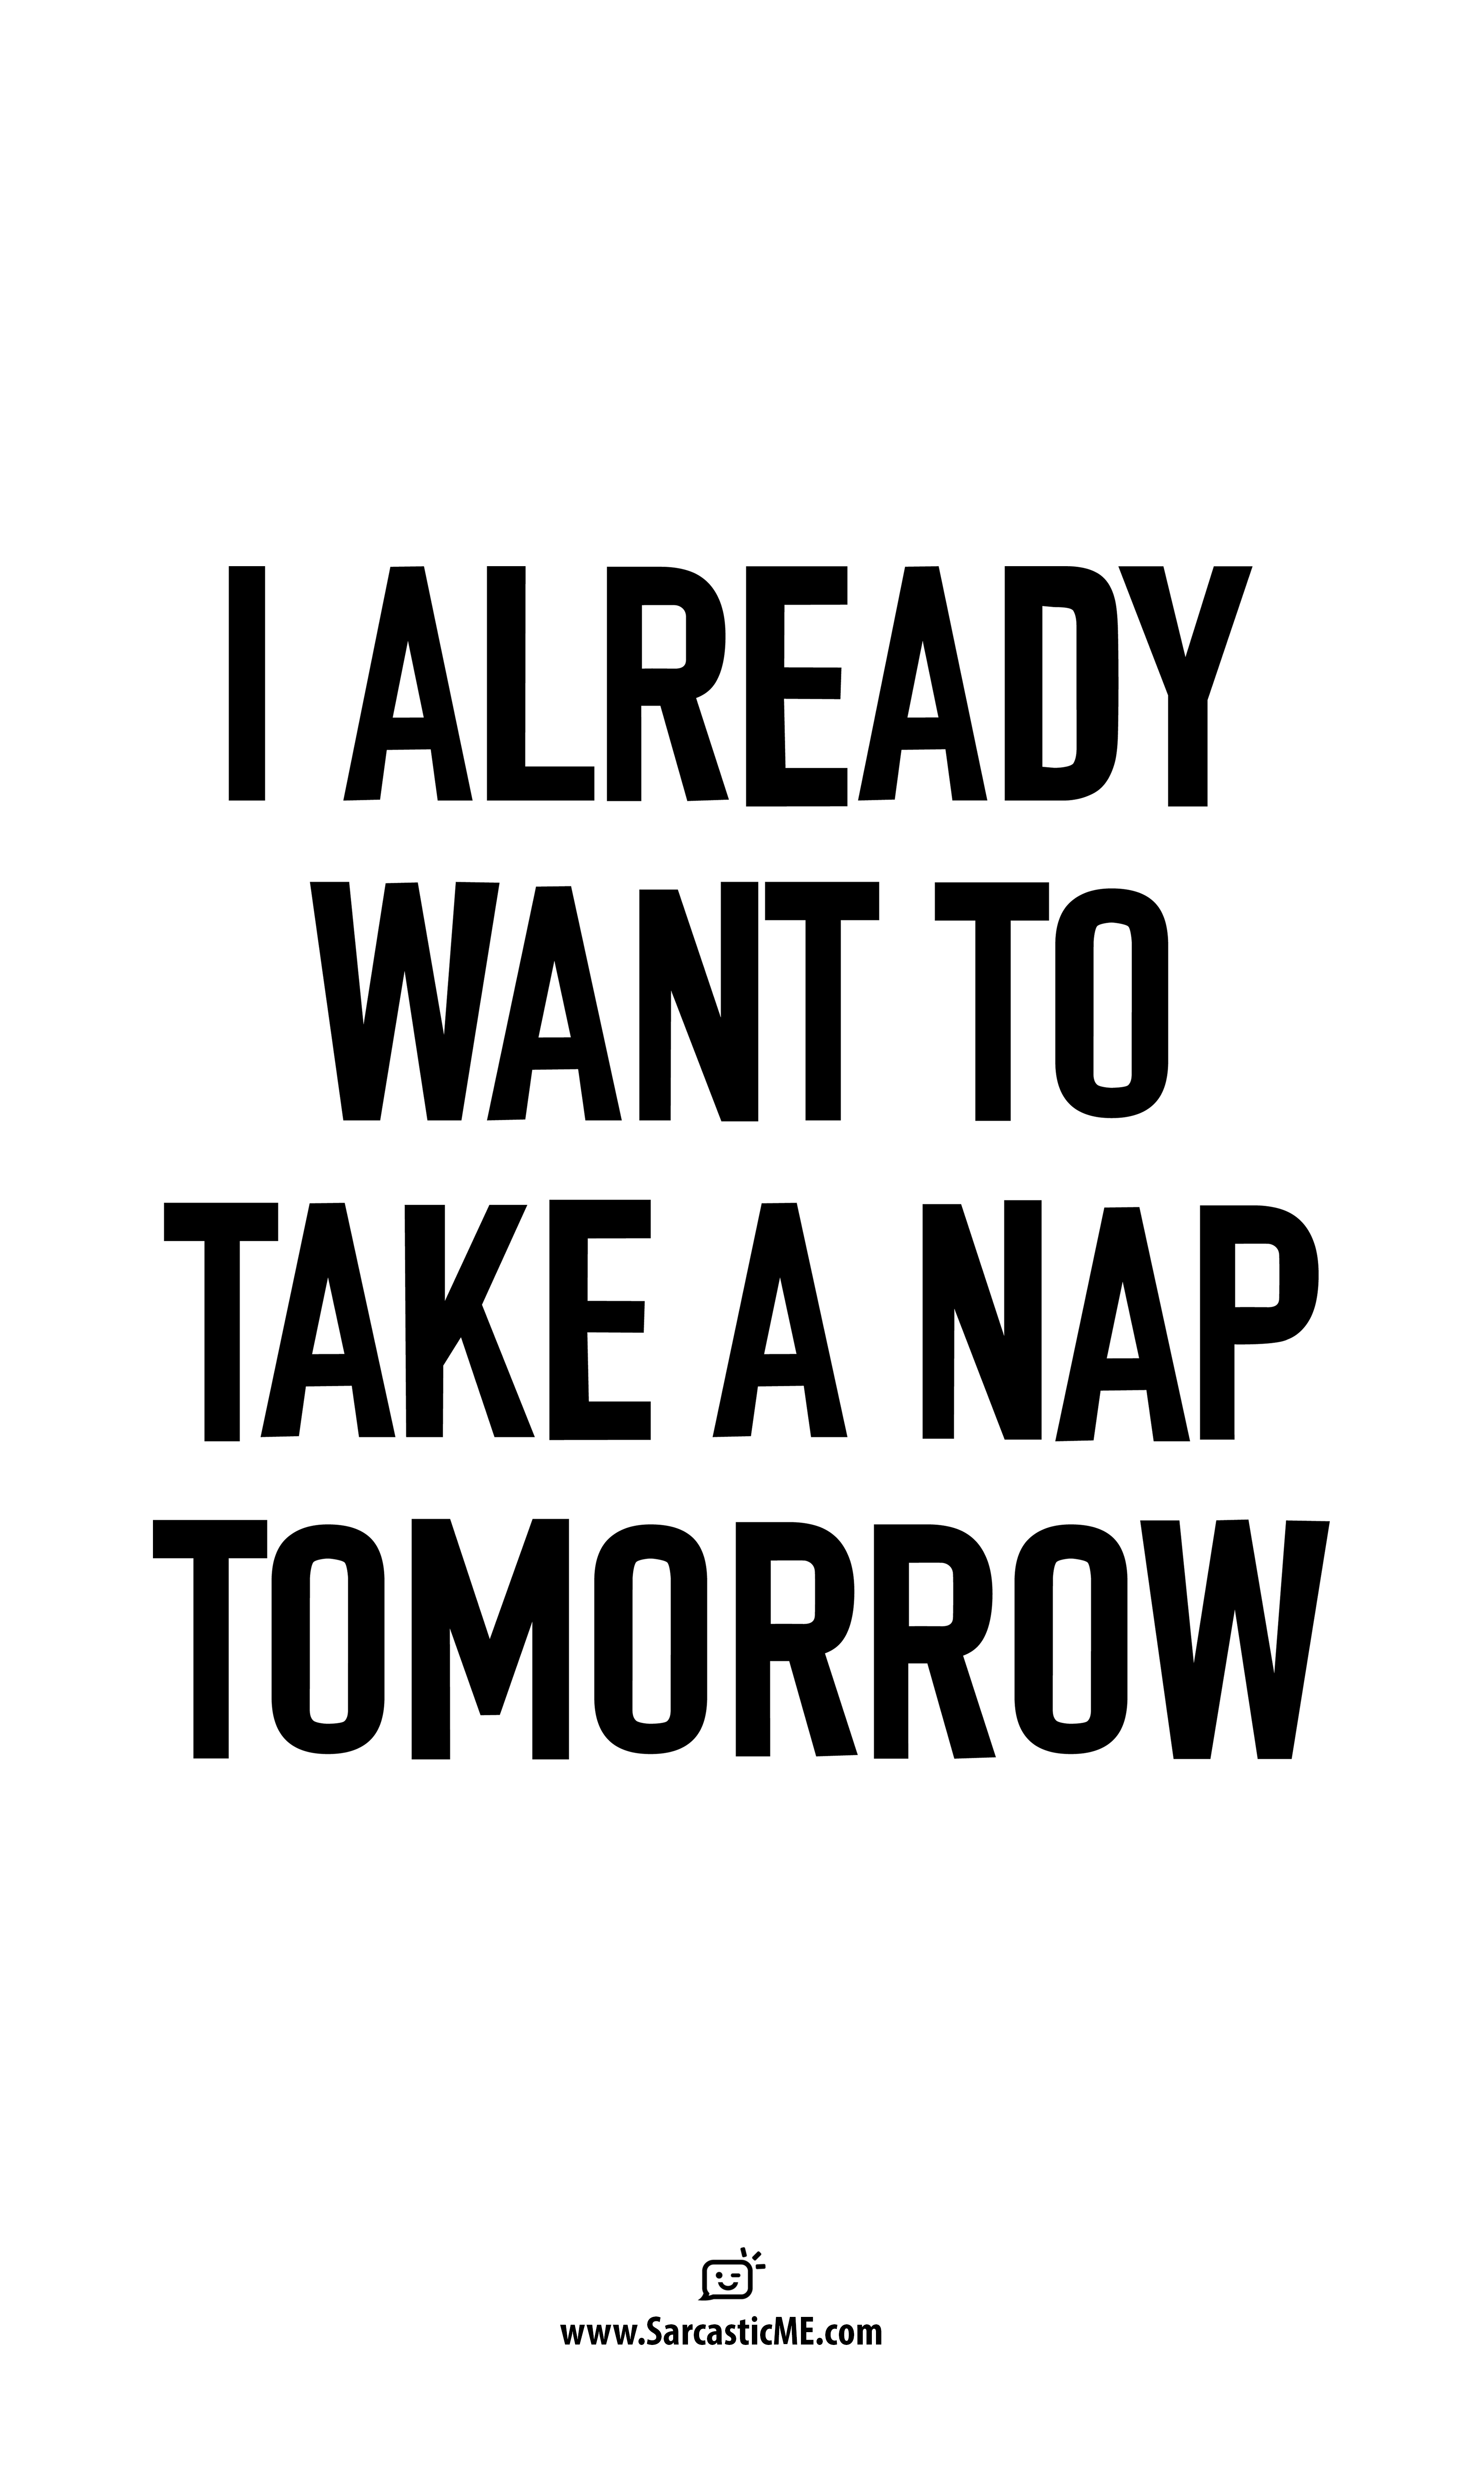 I Already Want To Take A Nap Tomorrow Unisex T Shirt Adulting Quotes Fatigue Quotes Funny Quotes